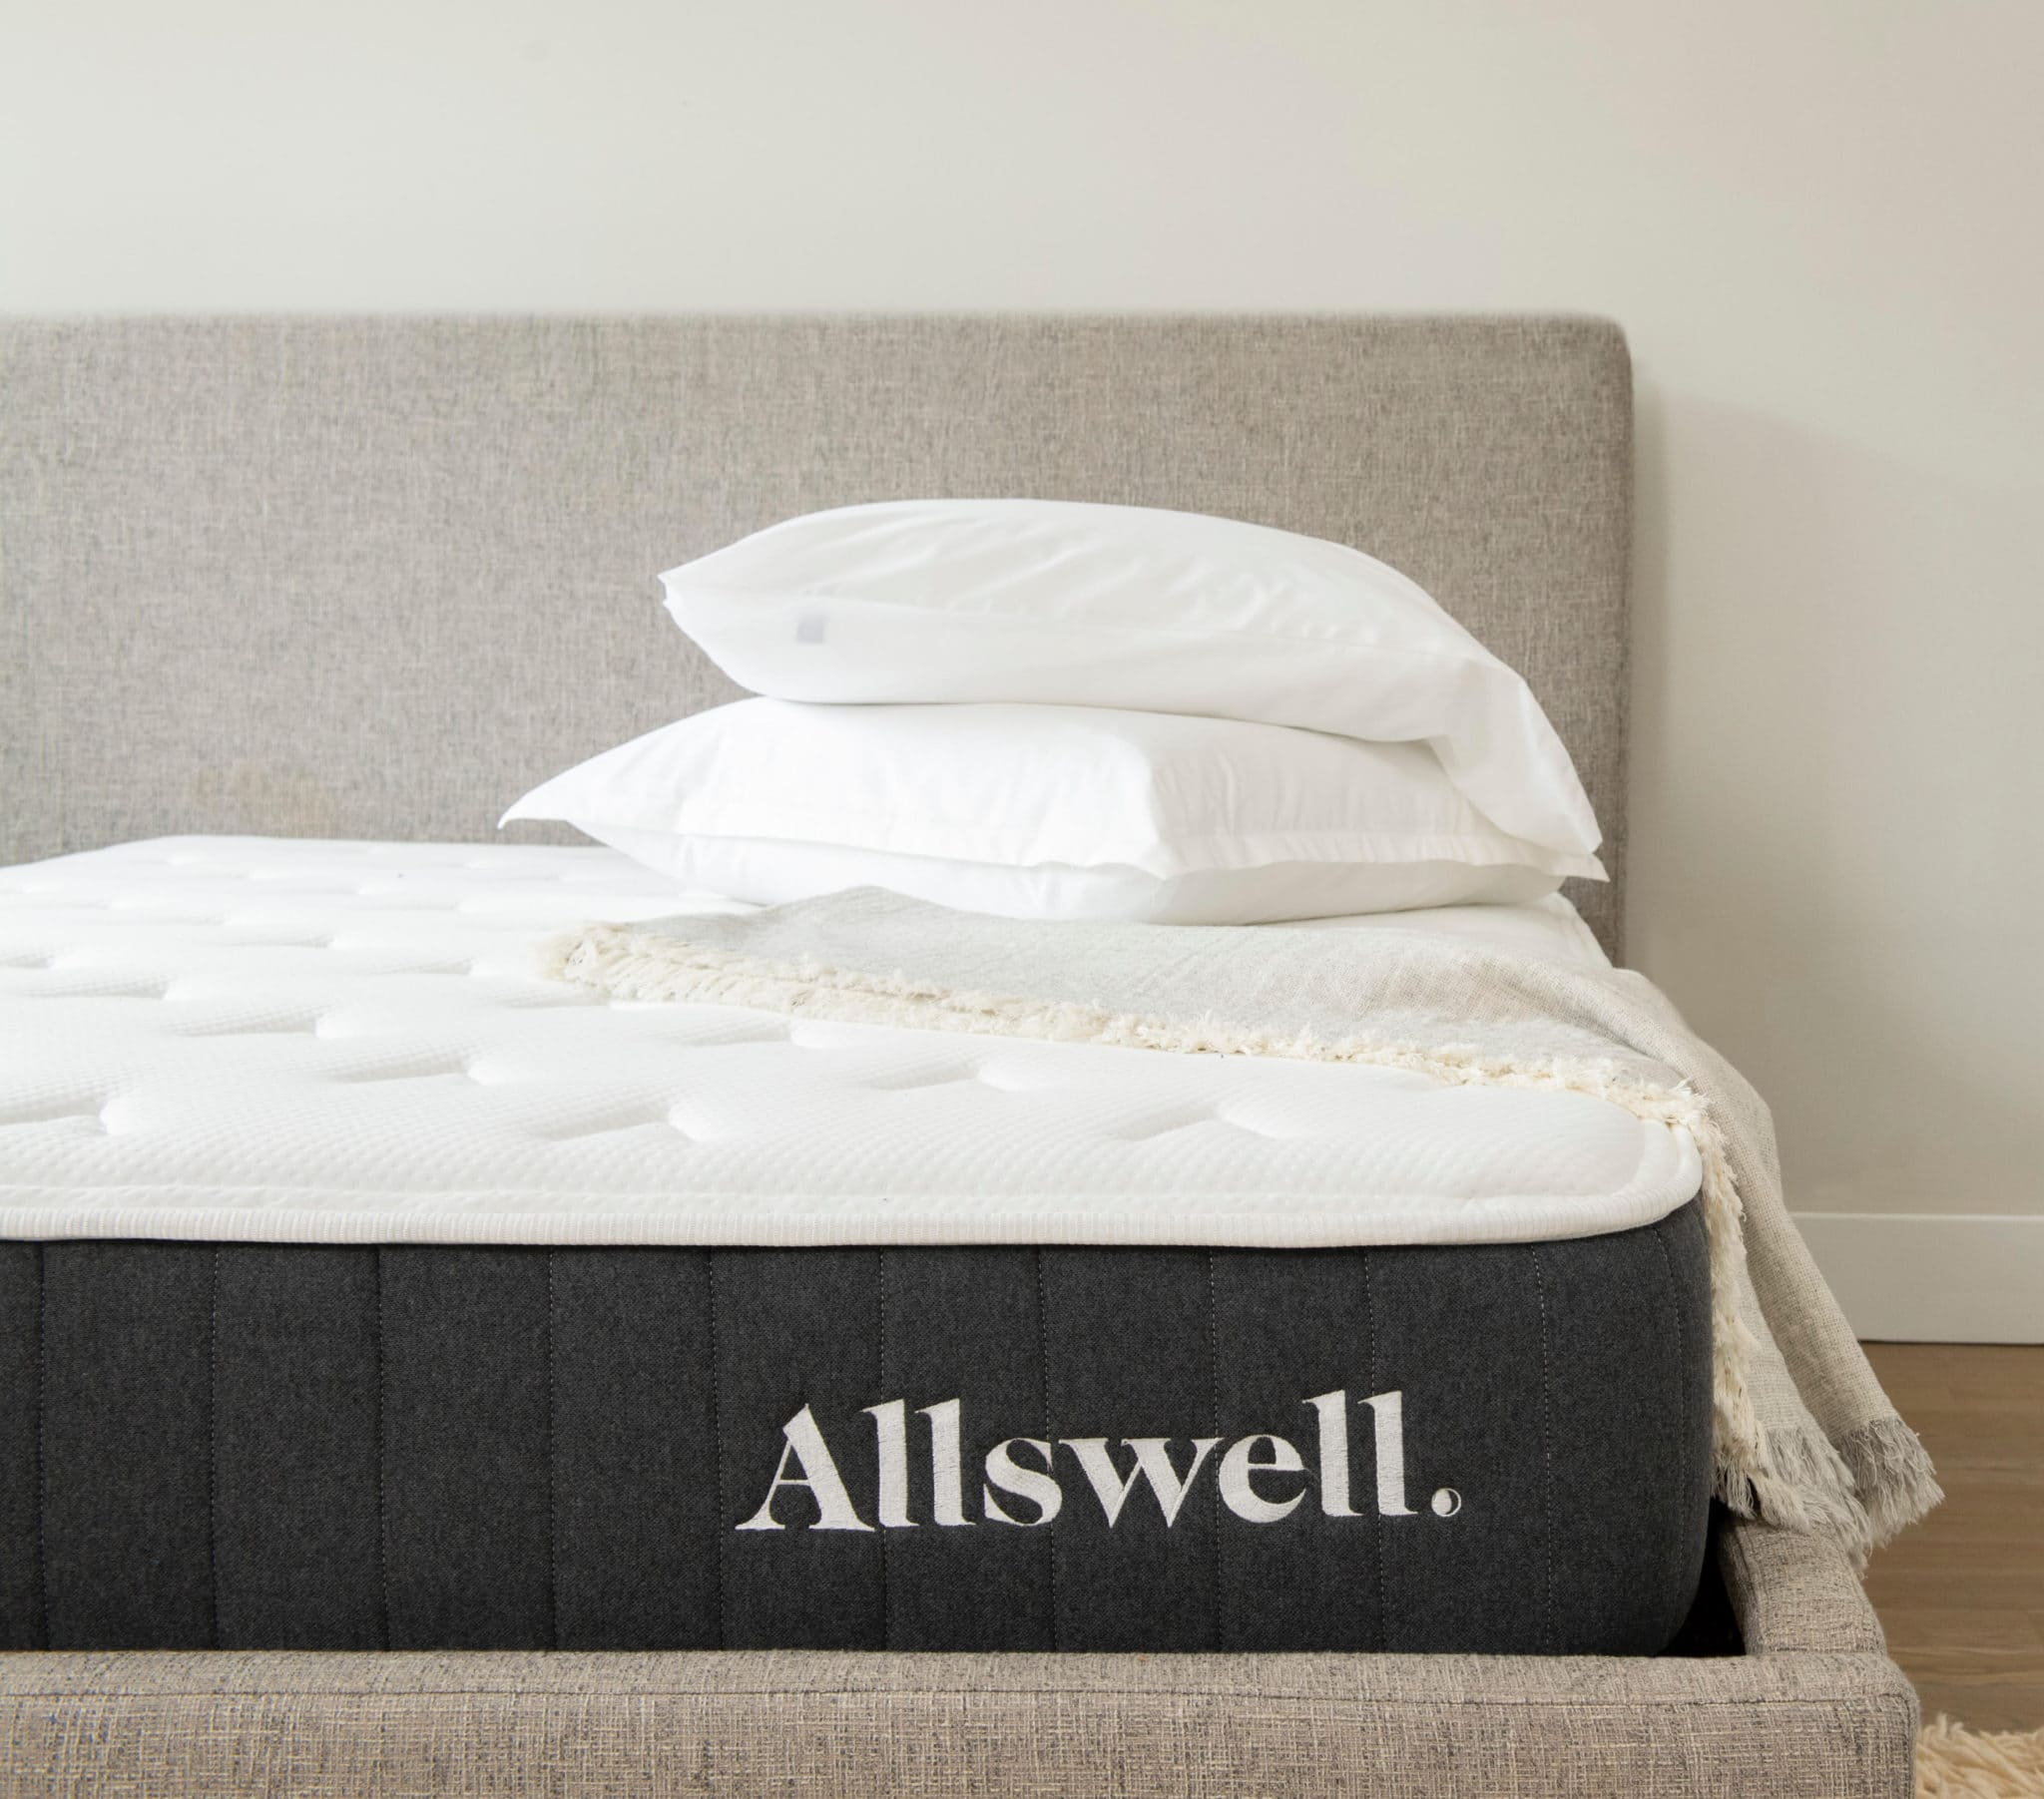 allswell mattresses and pillows